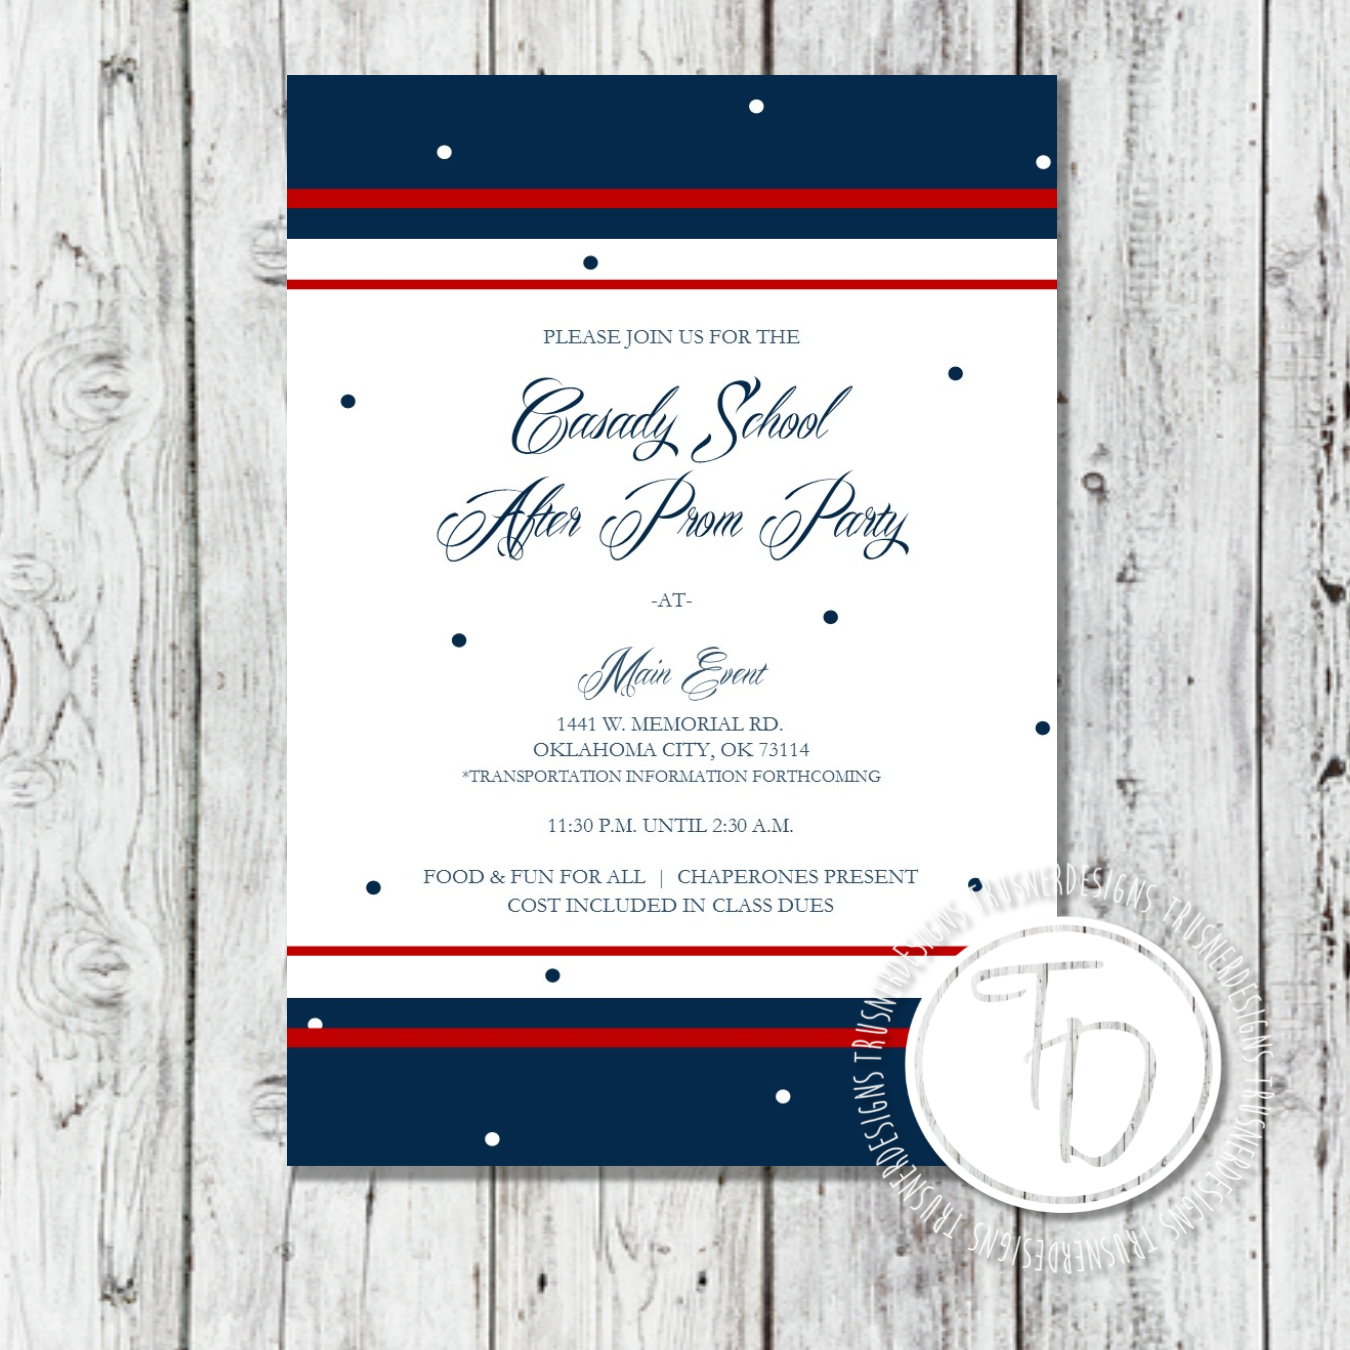 After Prom invitation Military Ball invitation by Trusner Designs